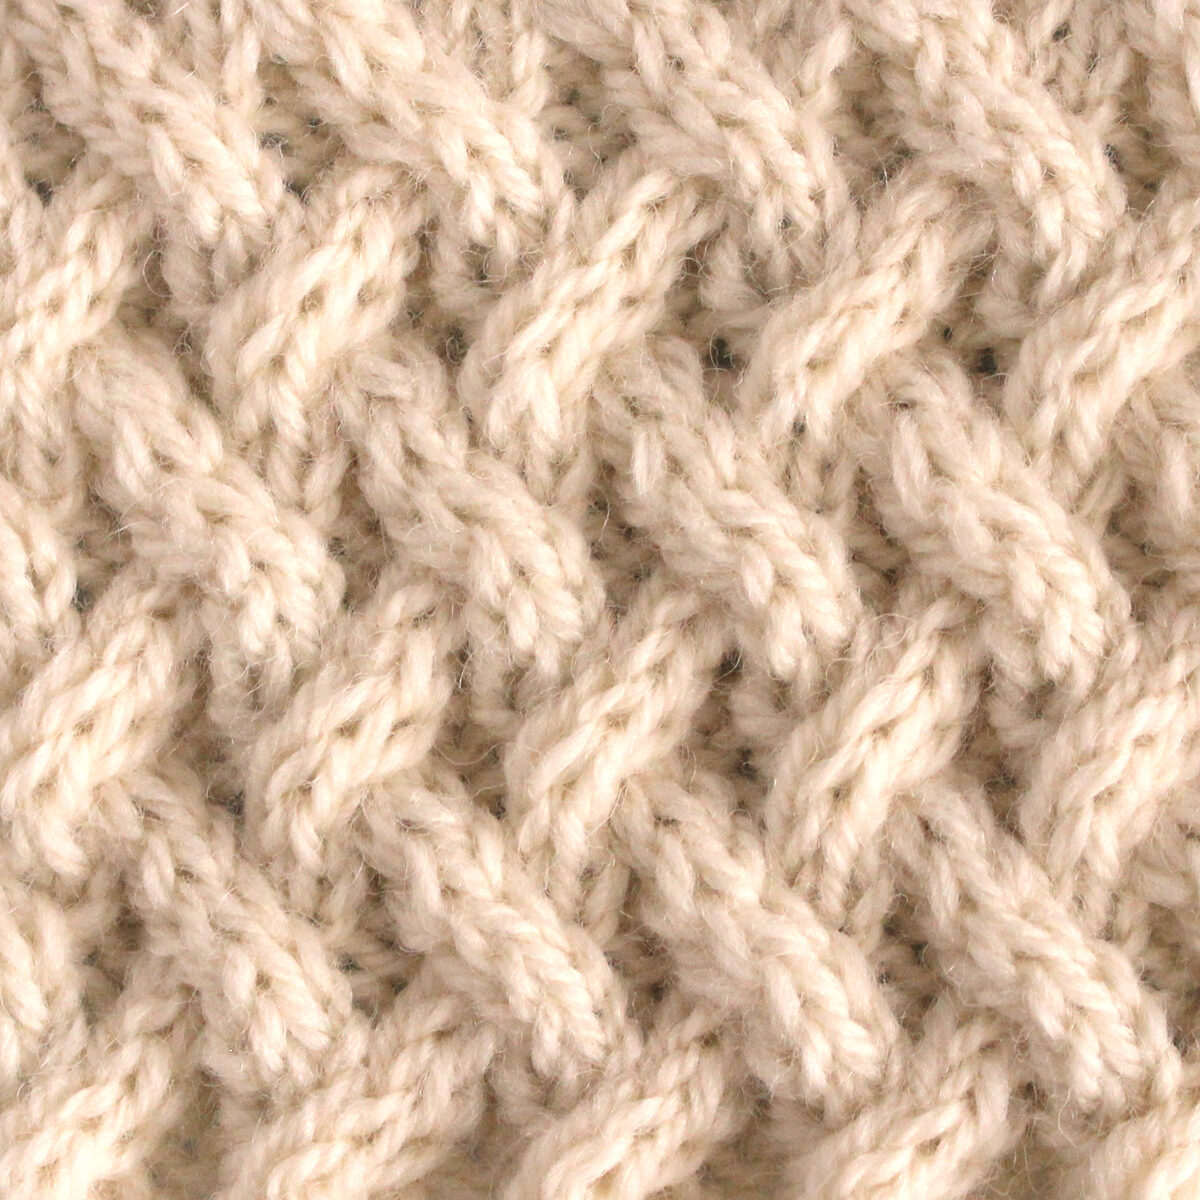 Lattice Cable Knit Stitch Pattern texture in beige color yarn.